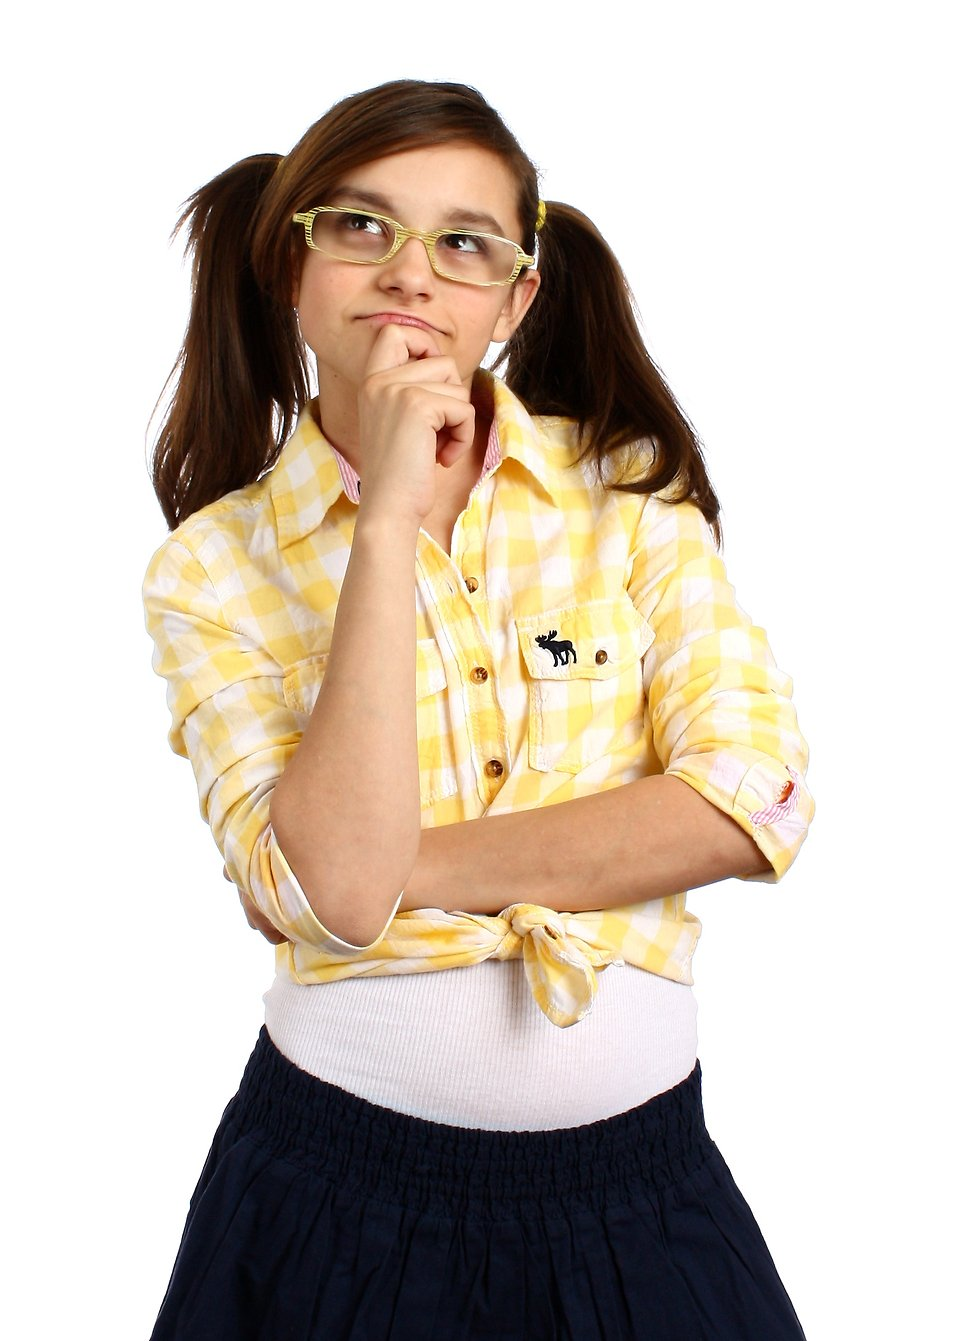 A smart girl with glasses posing with a thoughtful expression : Free Stock Photo